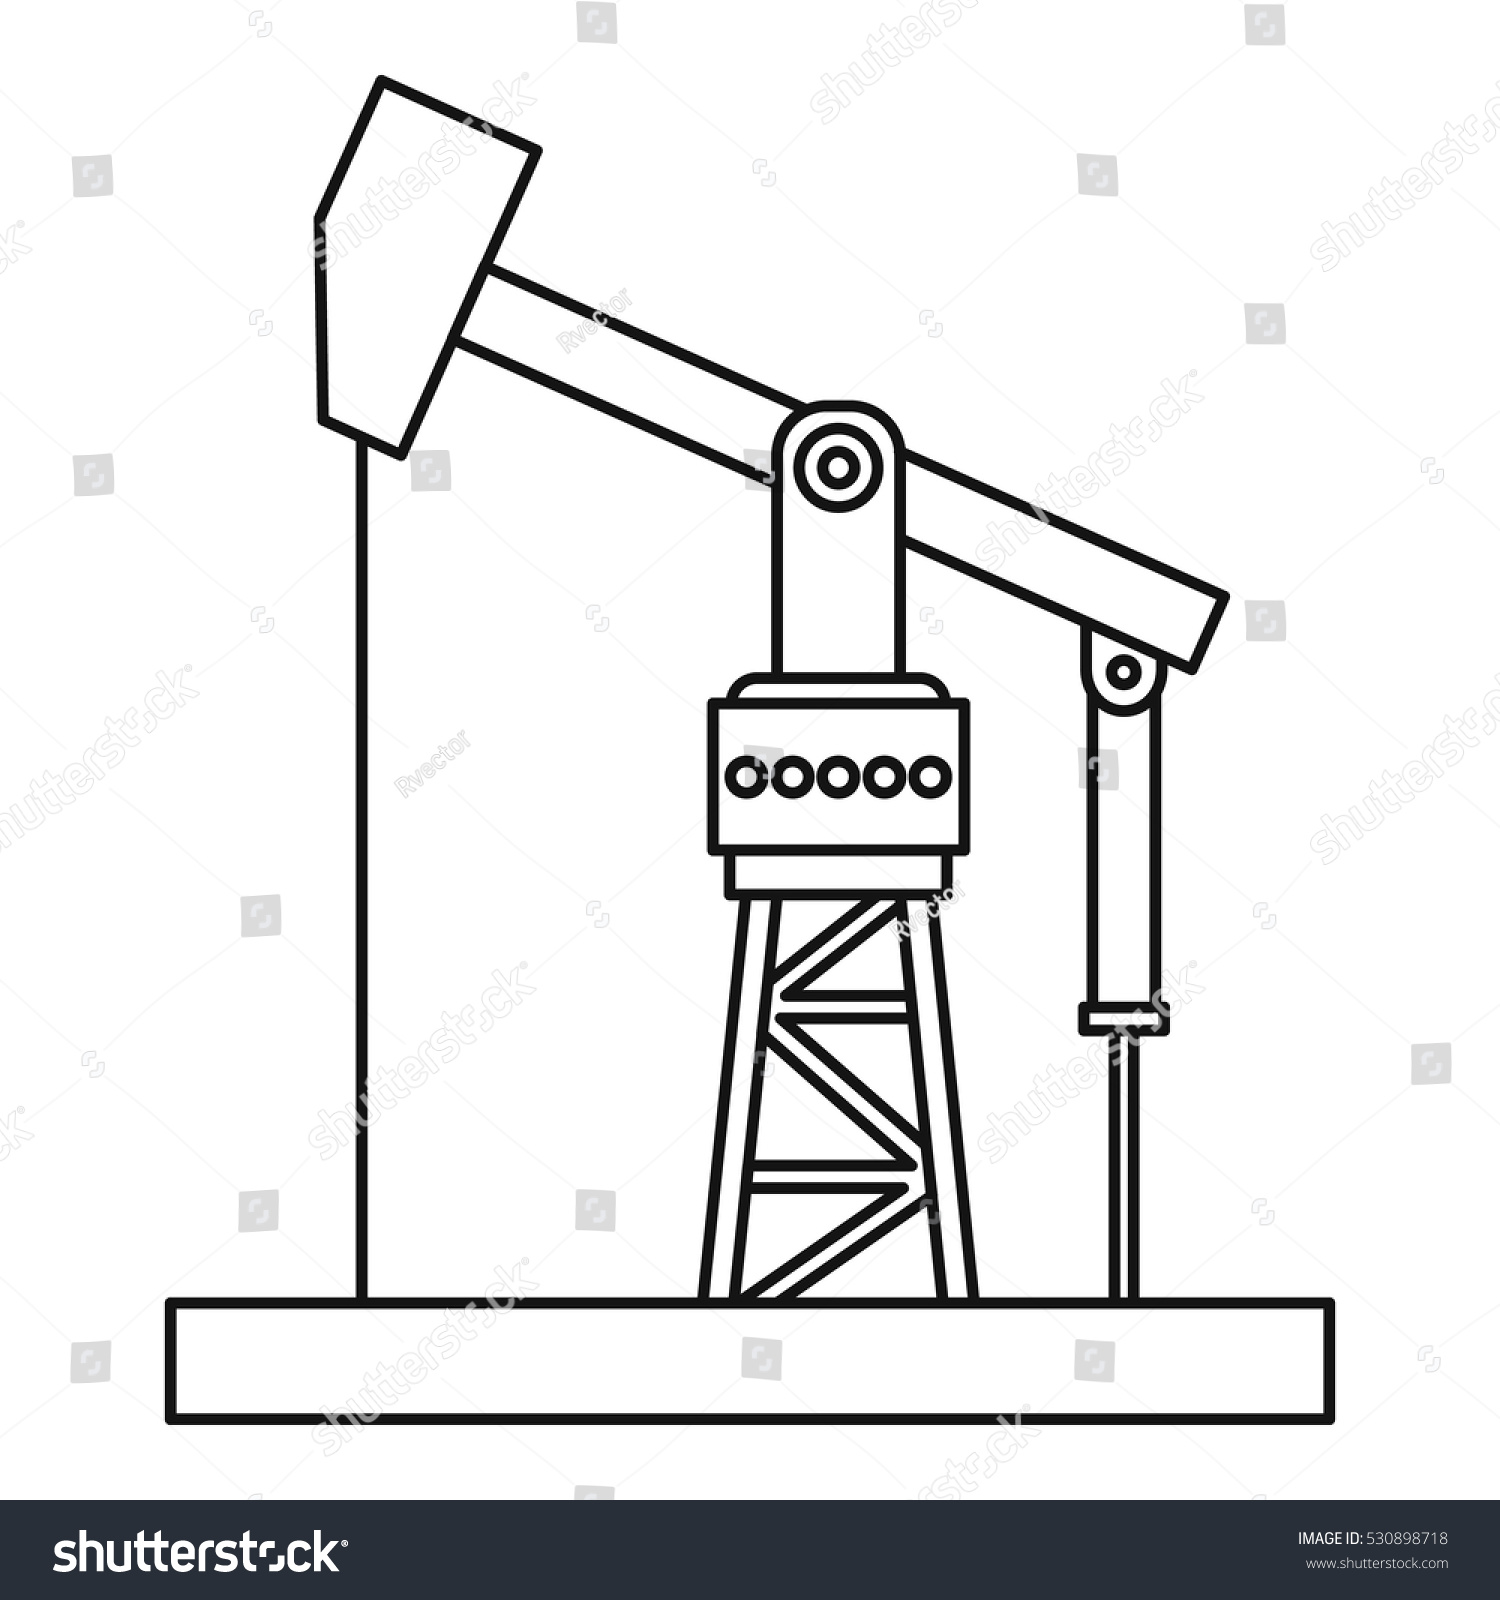 z rig diagram craftsman lt1000 lawn tractor wiring oil pumpjack icon outline illustration stock vector